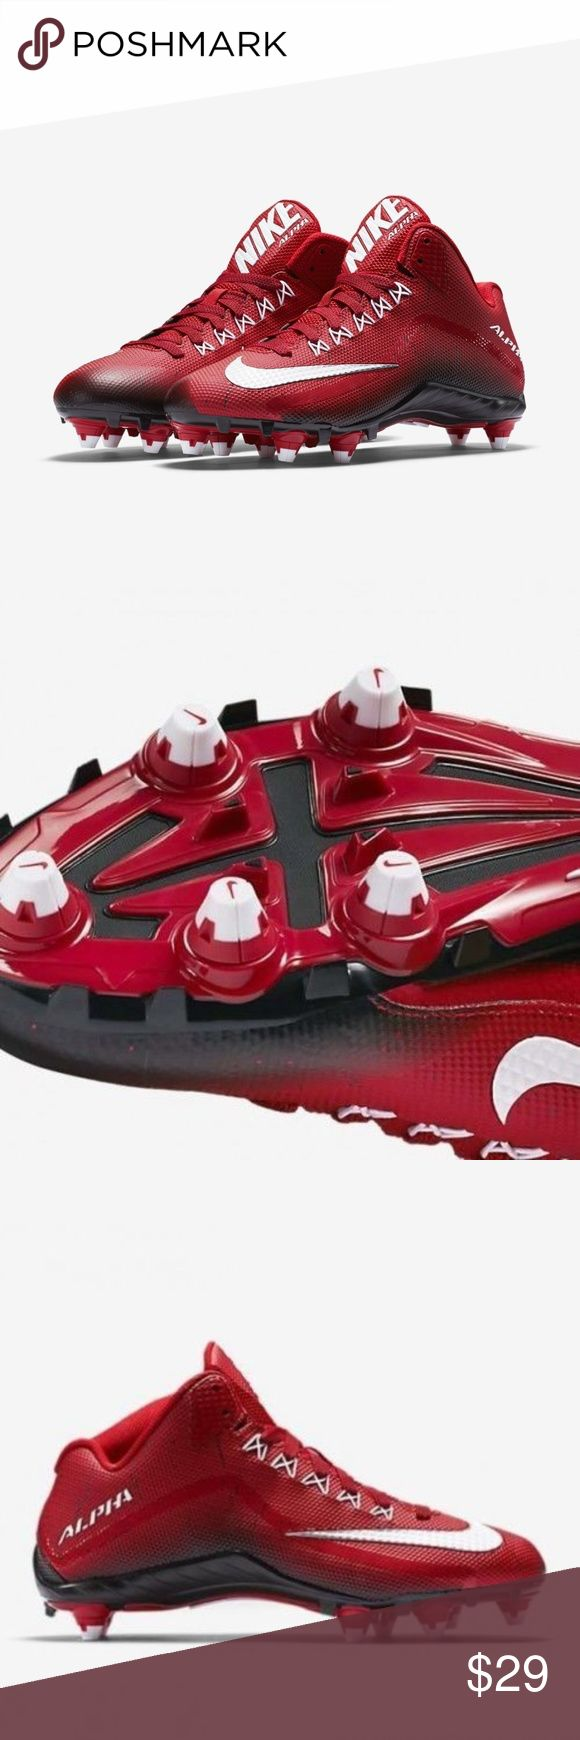 NIKE ALPHA PRO 2 3/4 D Red MEN'S FOOTBALL CLEATS NEW NIKE ALPHA PRO 2 3/4 D Red MEN'S FOOTBALL CLEATS 705409-610 Size 13 NEW WITH OUT BOX Nike Shoes Athletic Shoes